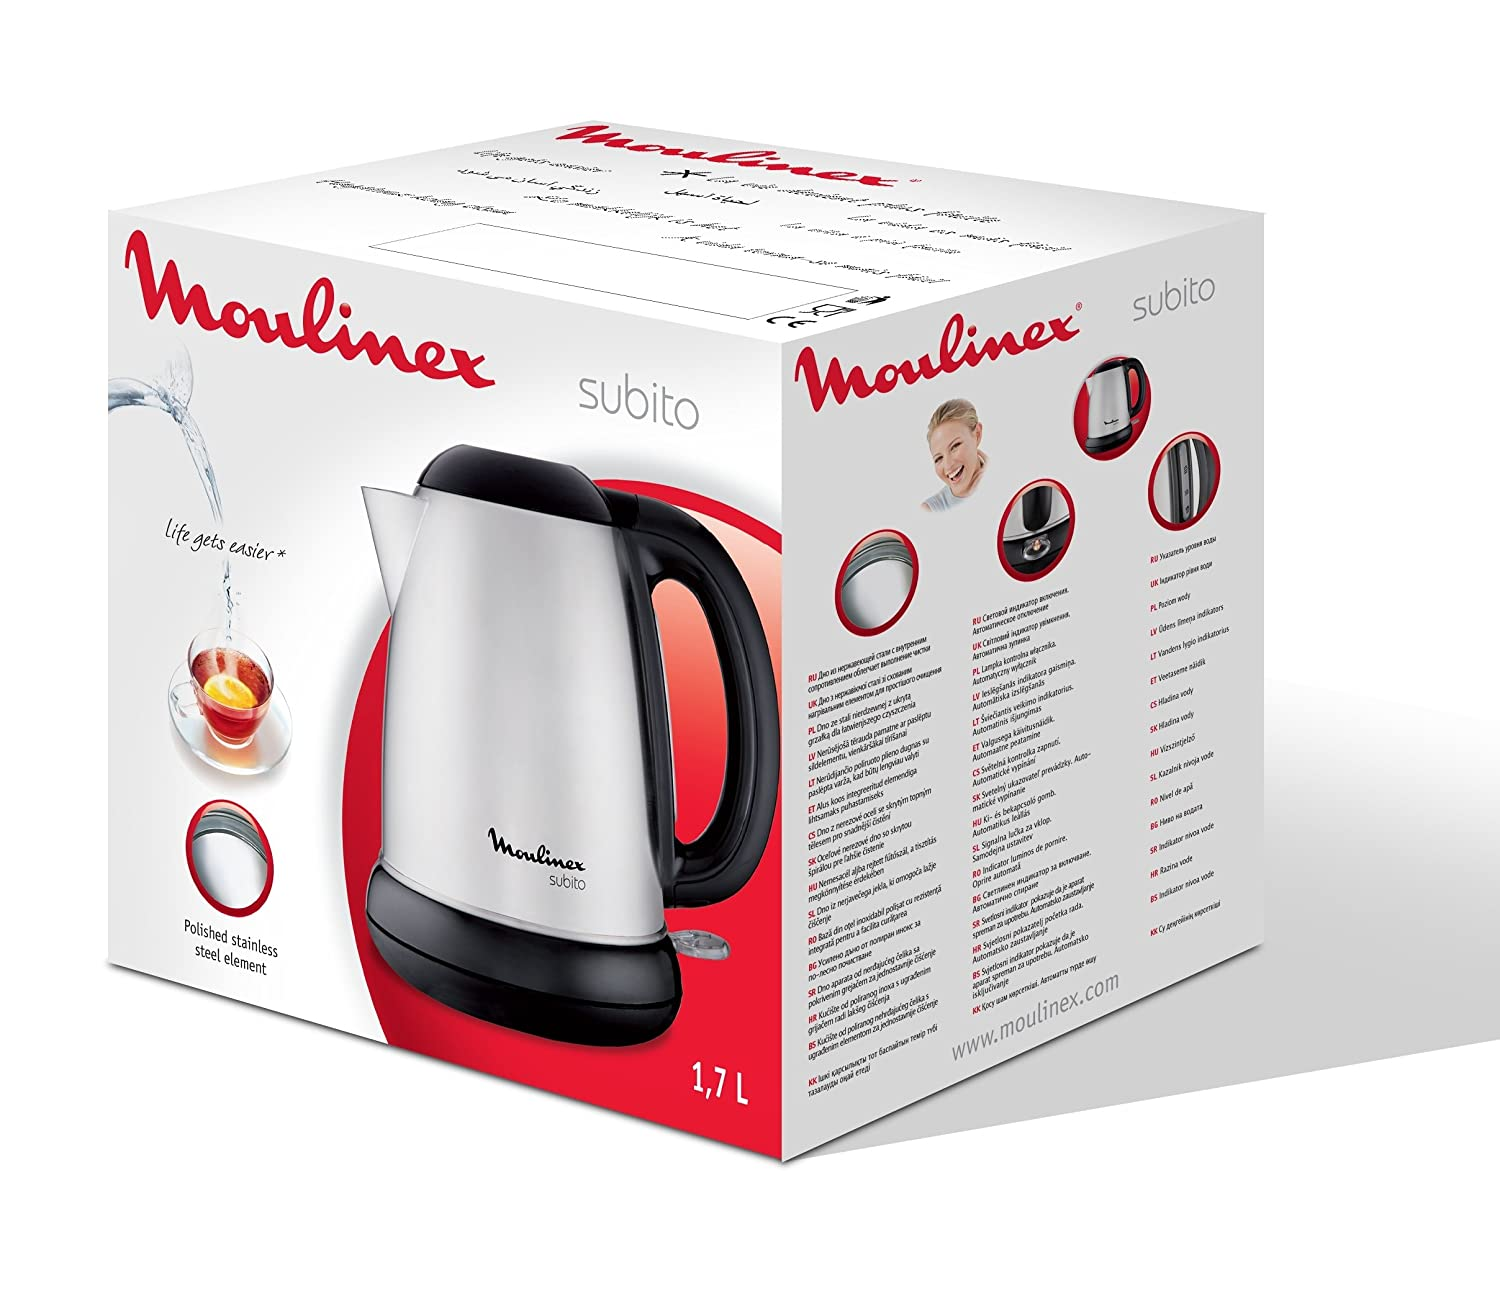 Moulinex BY540D10 Hervidor, 2400 W, 1.7 L, 1dB, acero inoxidable, color cromado